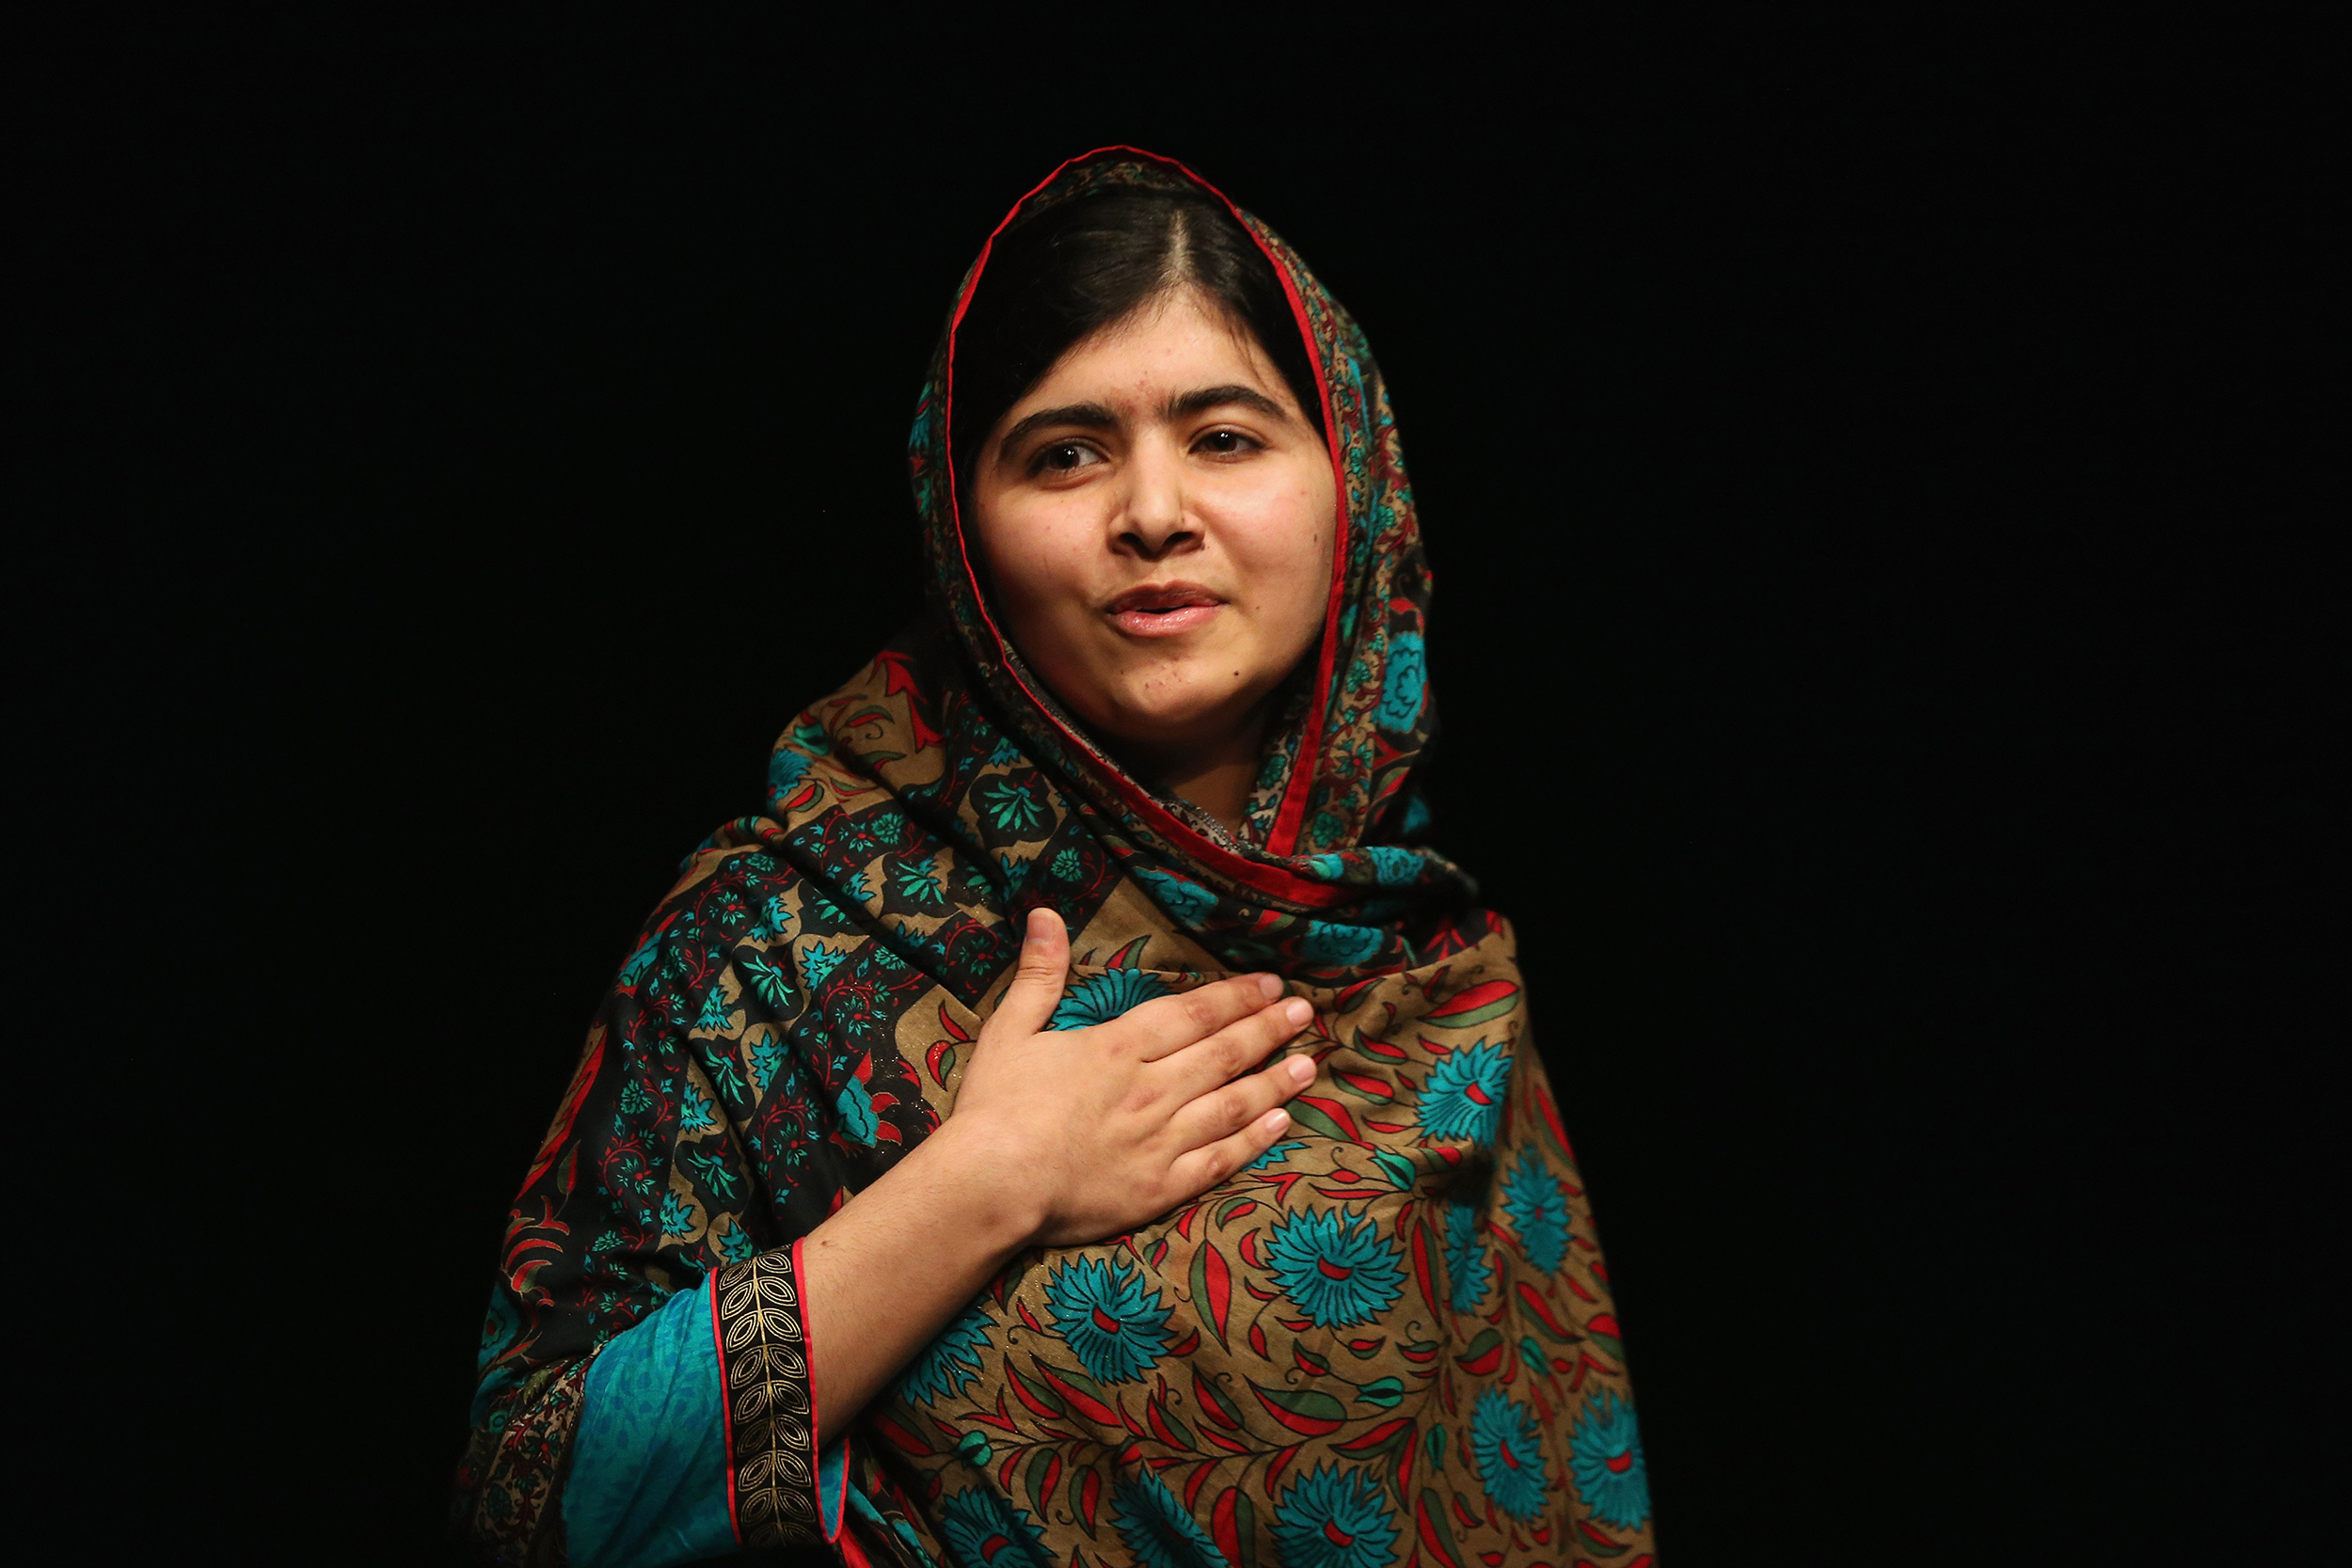 Malala Yousafzai grateful to Qatar government for help in Afghan evacuations